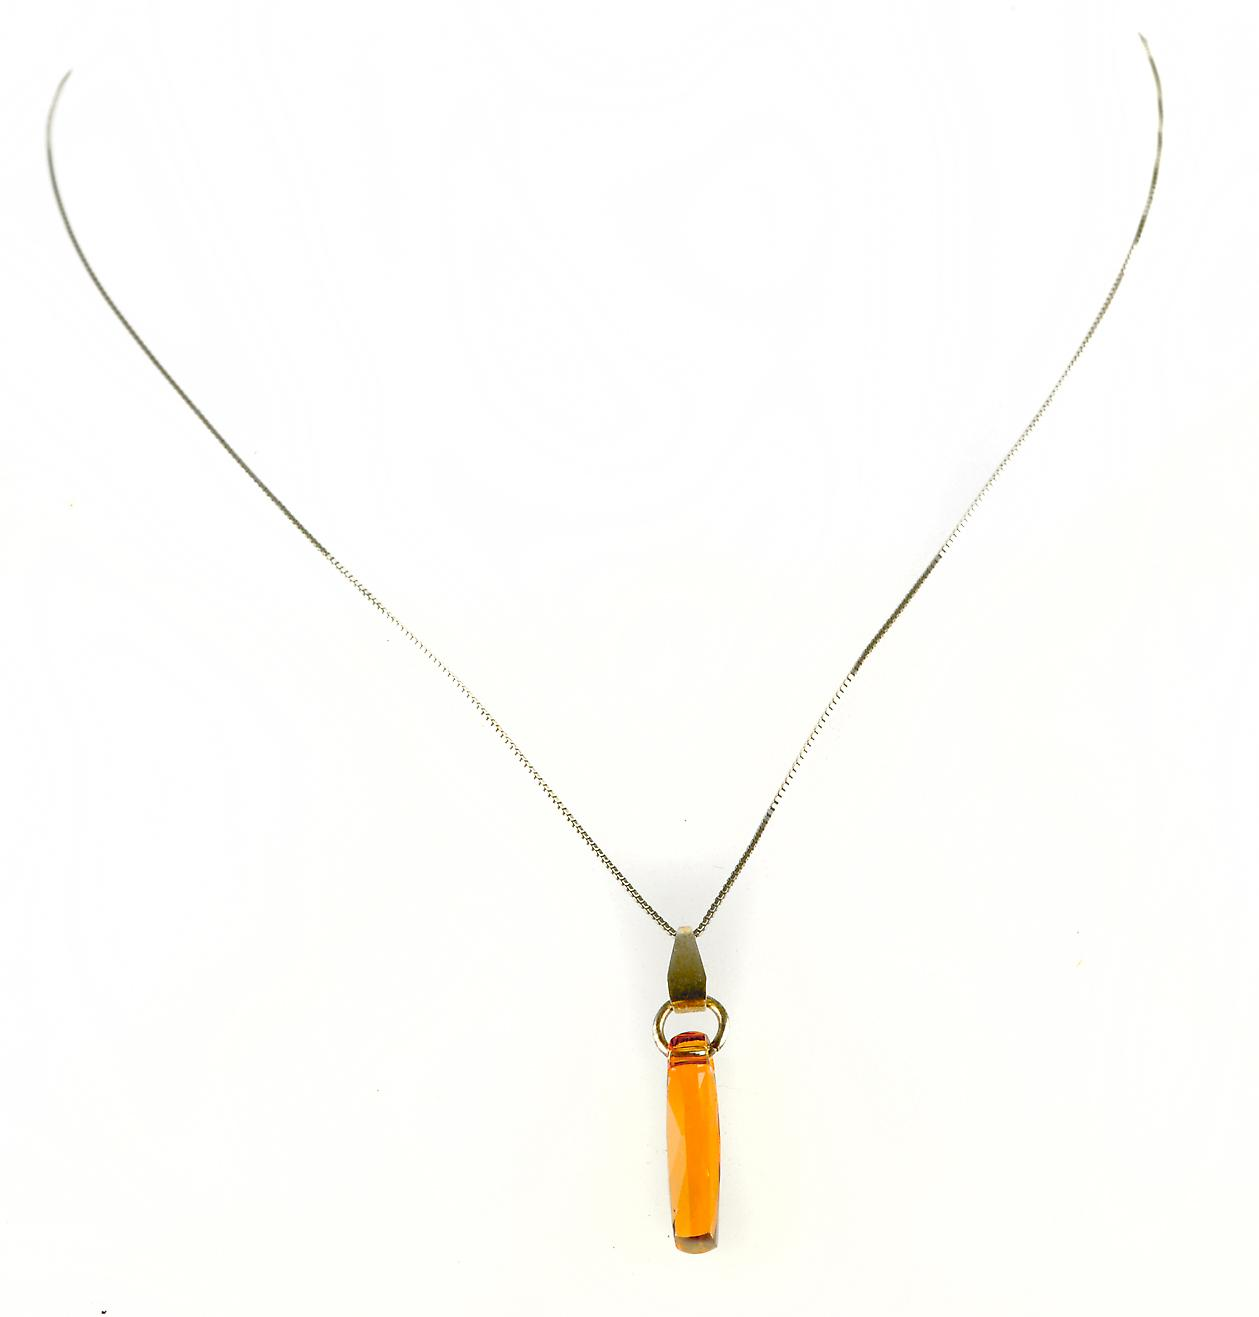 Waooh - Fashion Jewellery - WJ0304 - Necklace with Swarovski Stone - Colour Silver Chain